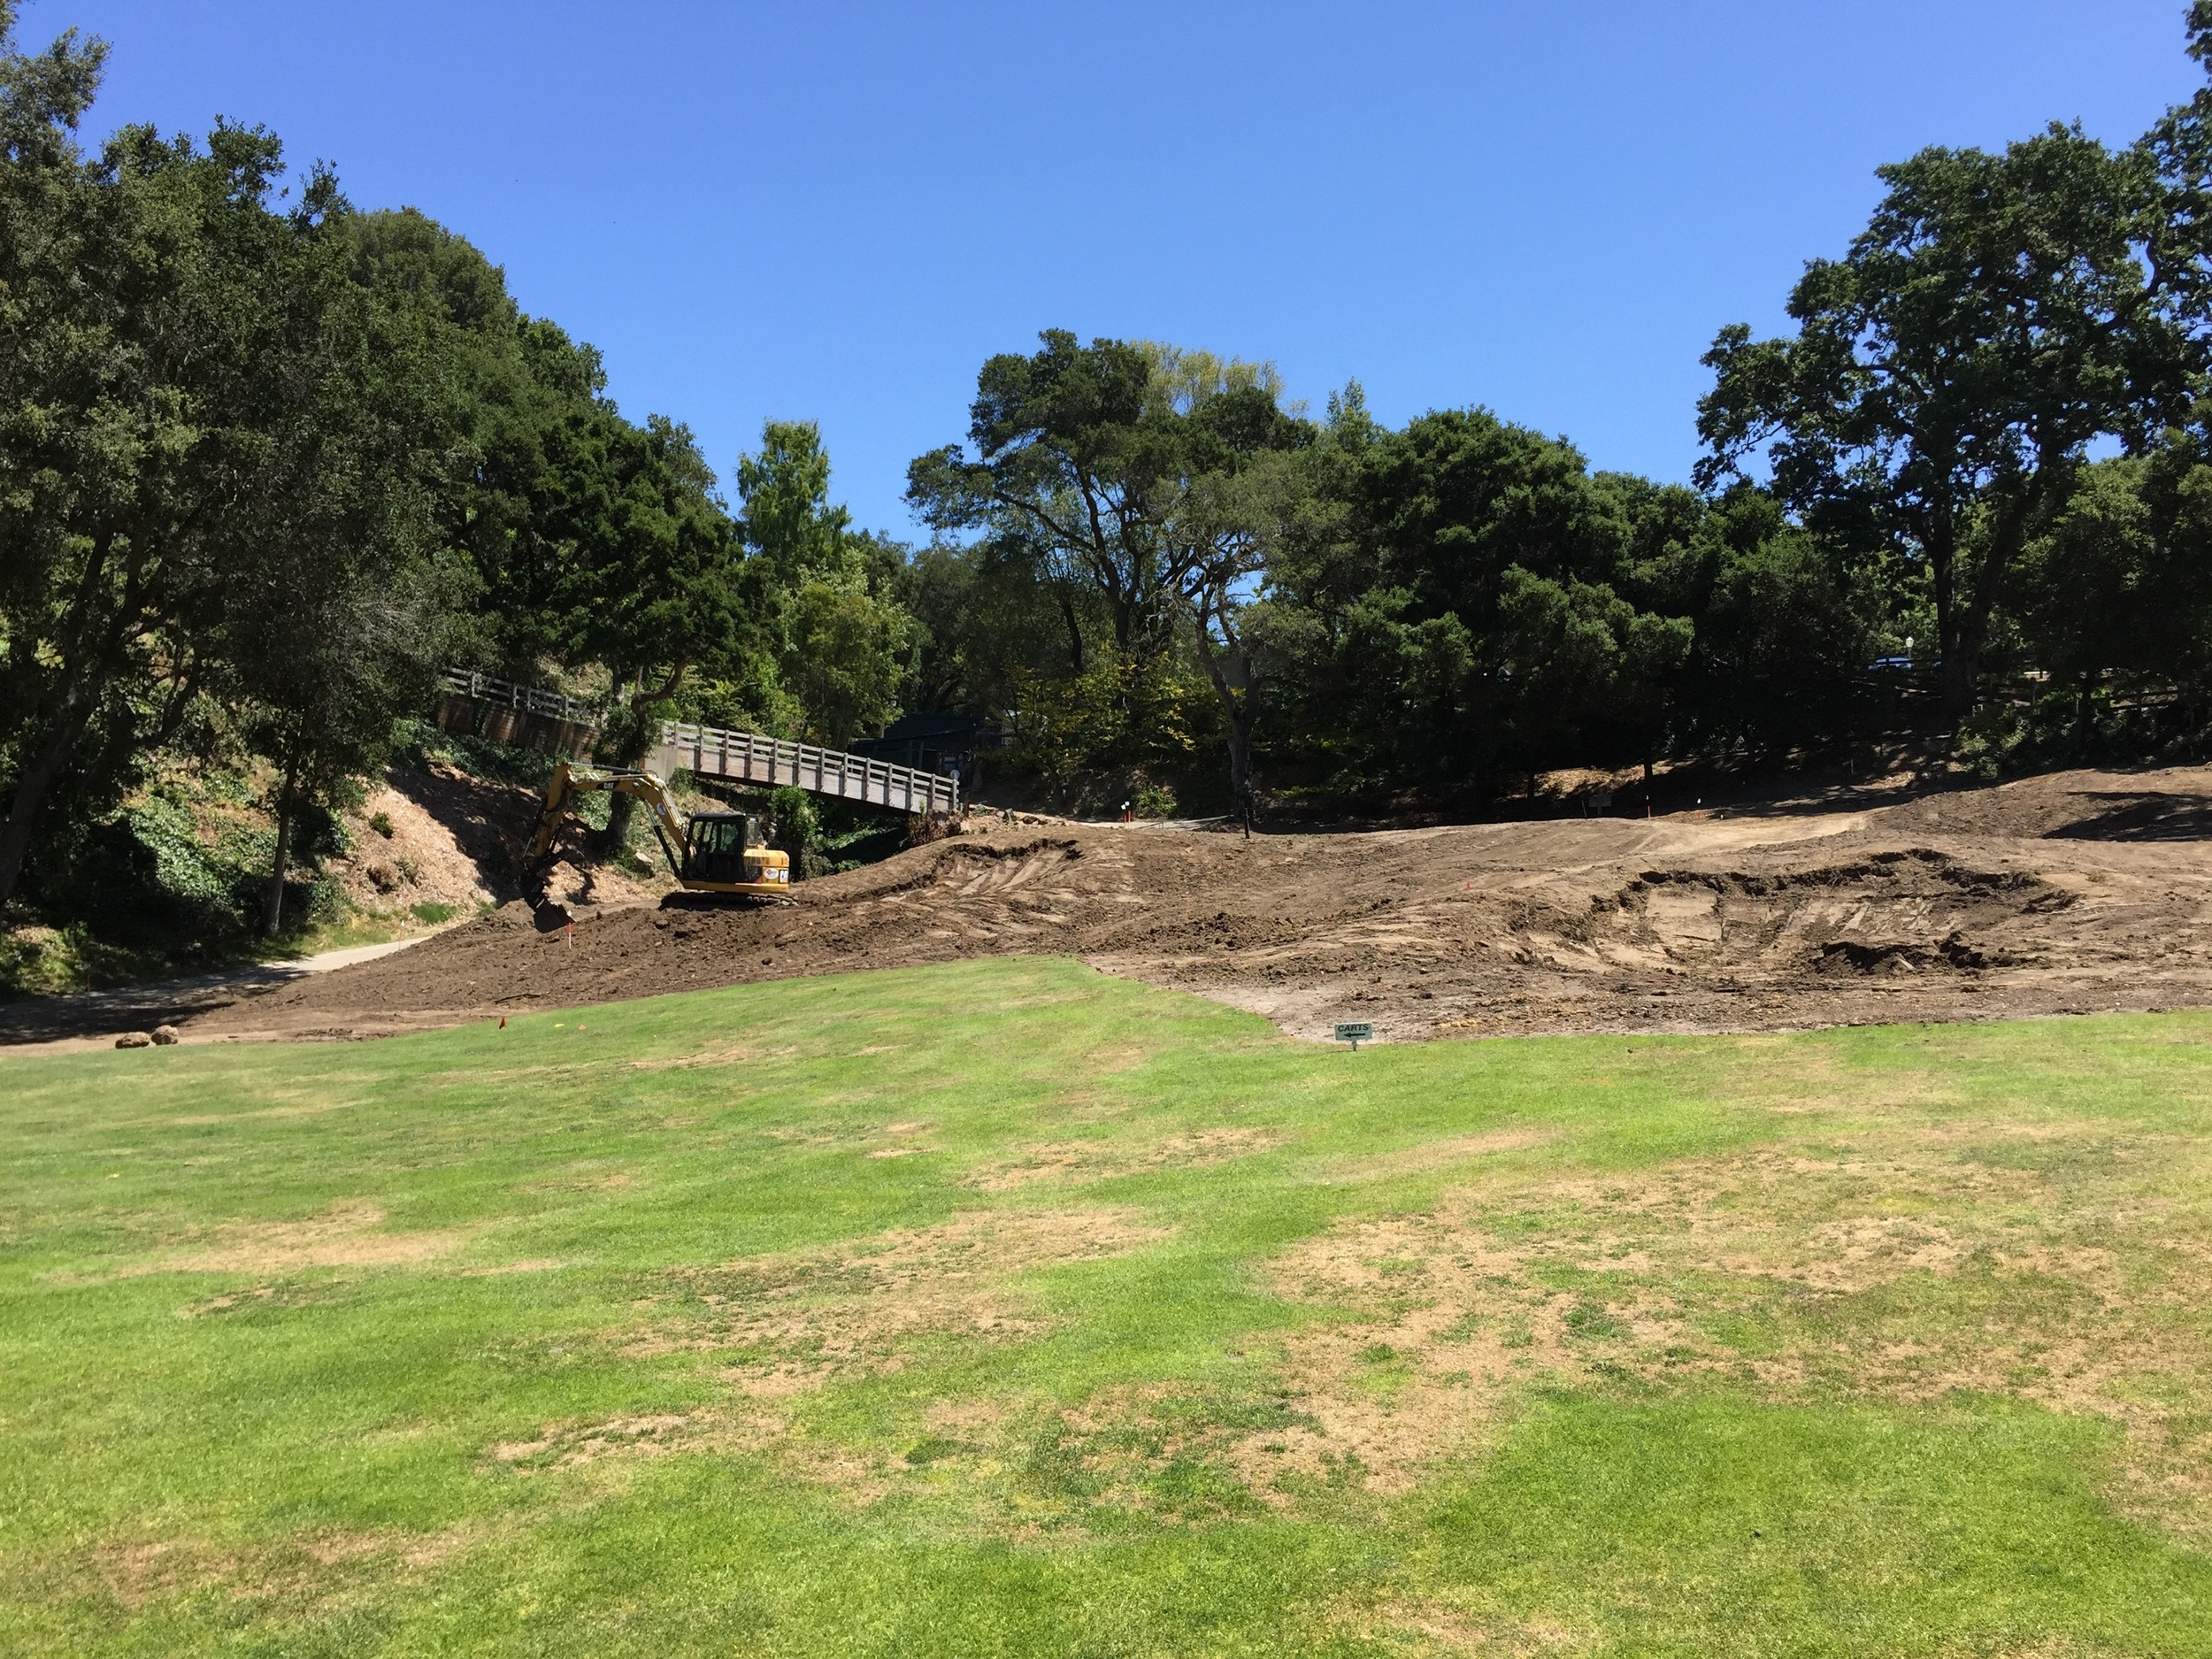 hochstein-design-orinda-cc-construction-hole-18-3.jpg